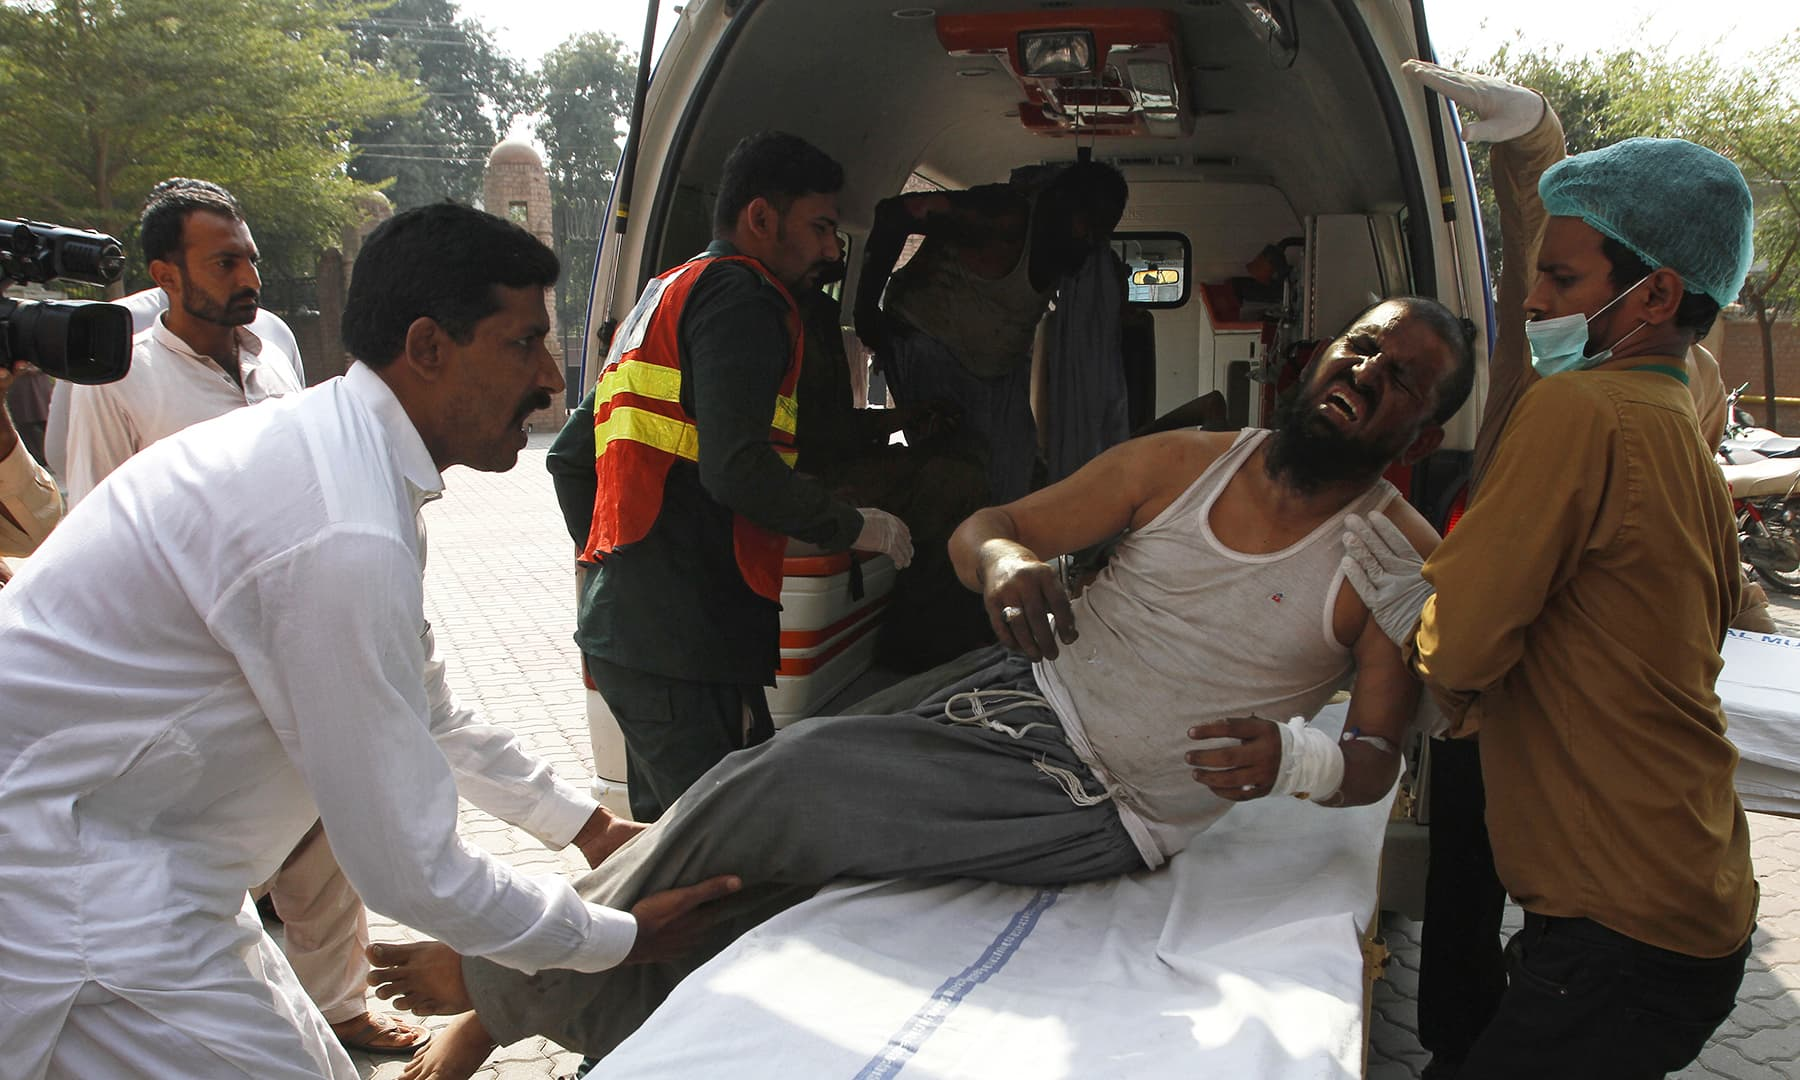 Hospital staff shift a man who was injured in a train fire, to a hospital in Multan on October 31. — AP